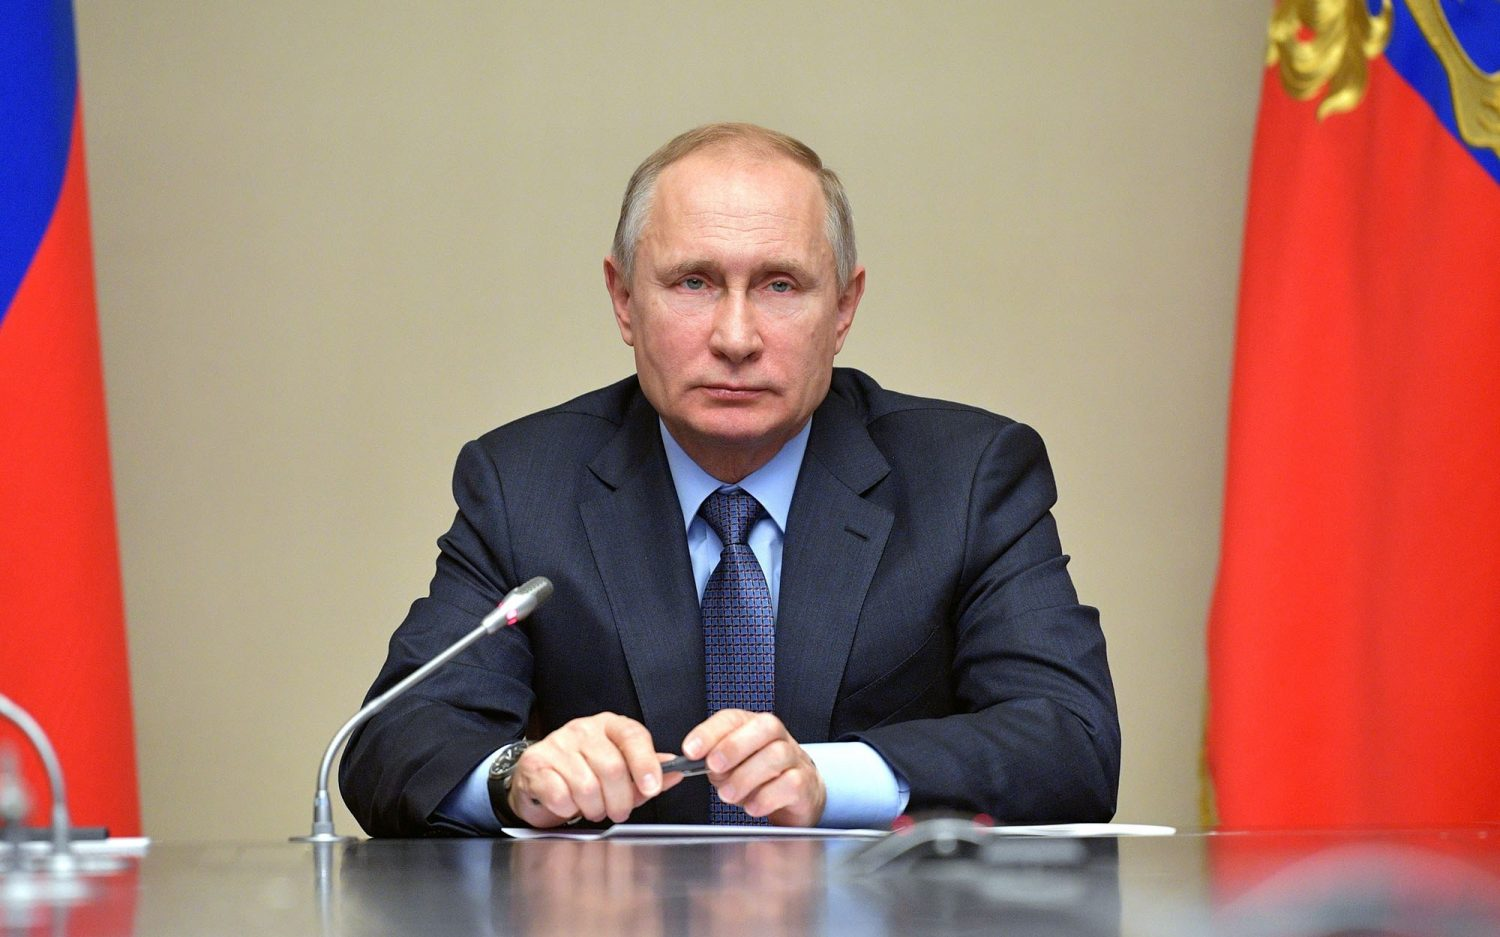 Report: Putin ordered campaign interference